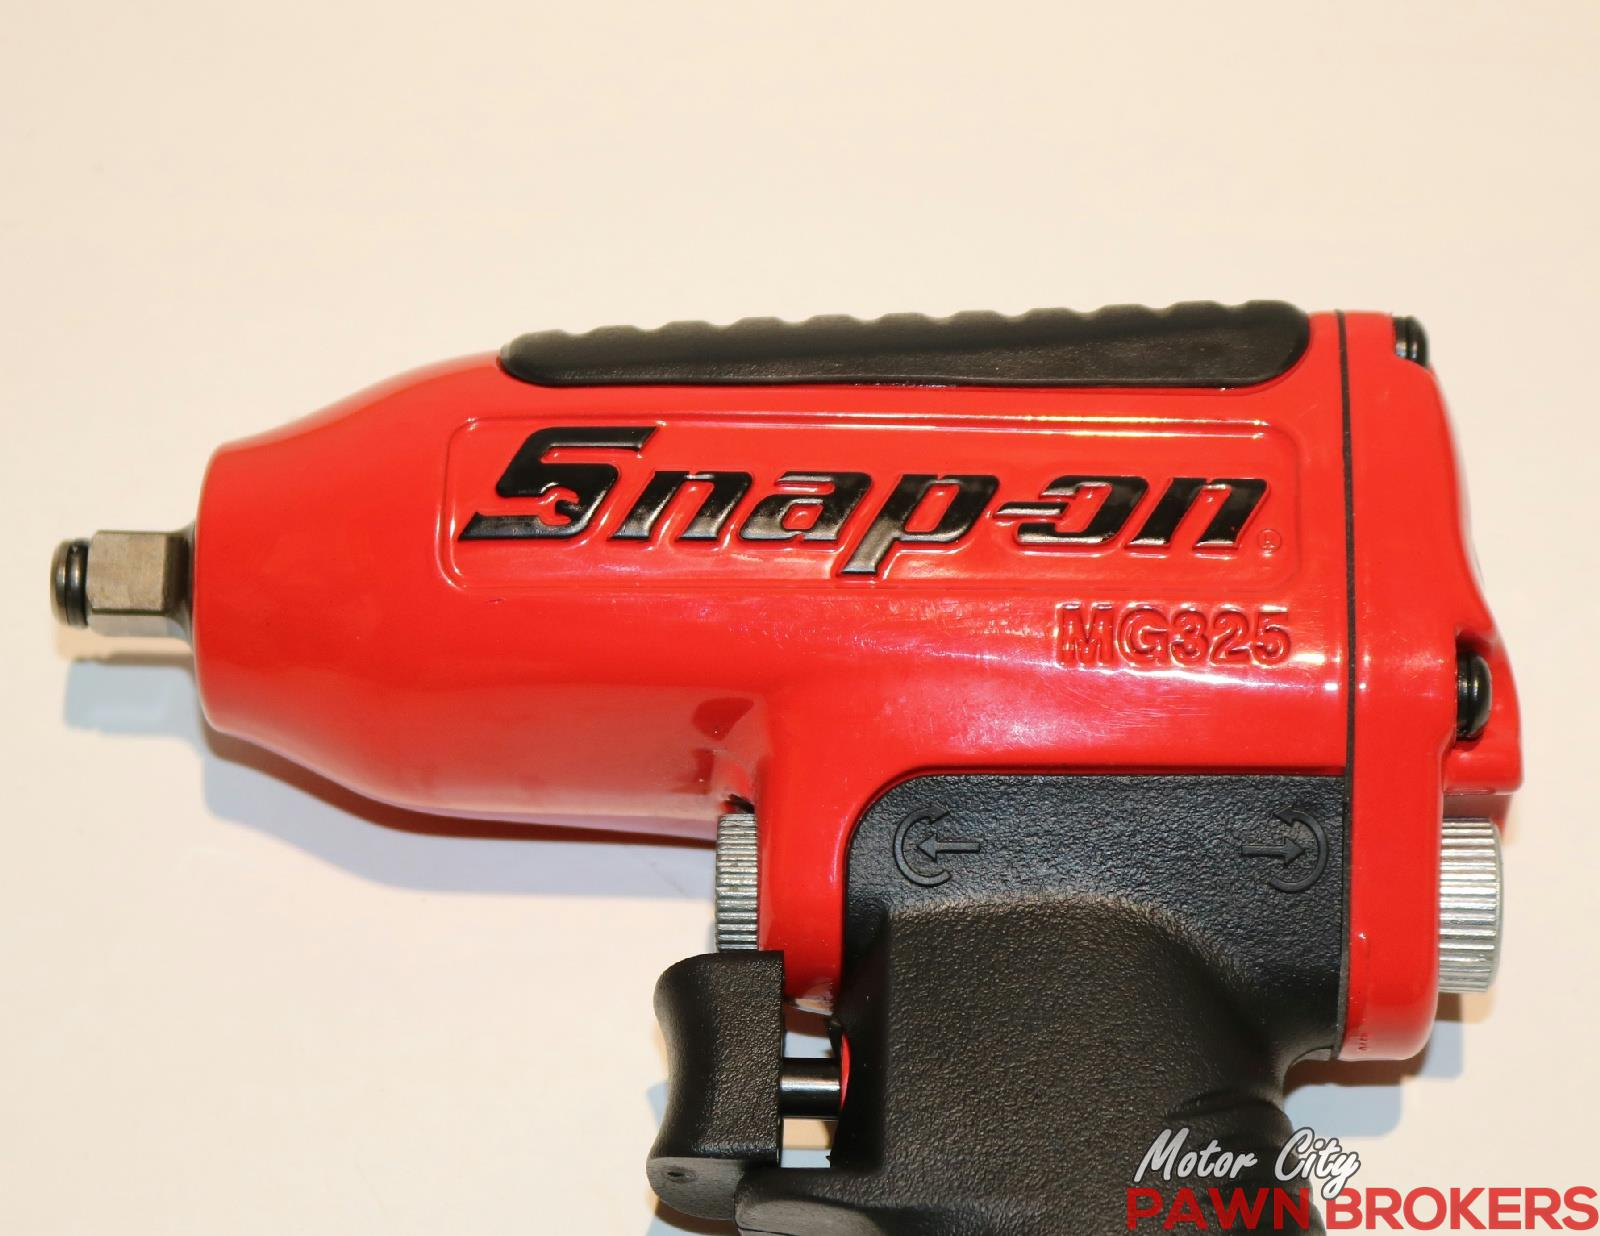 Snap on mg325 3 8 drive usa air impact wrench for Motor city pawn brokers roseville mi